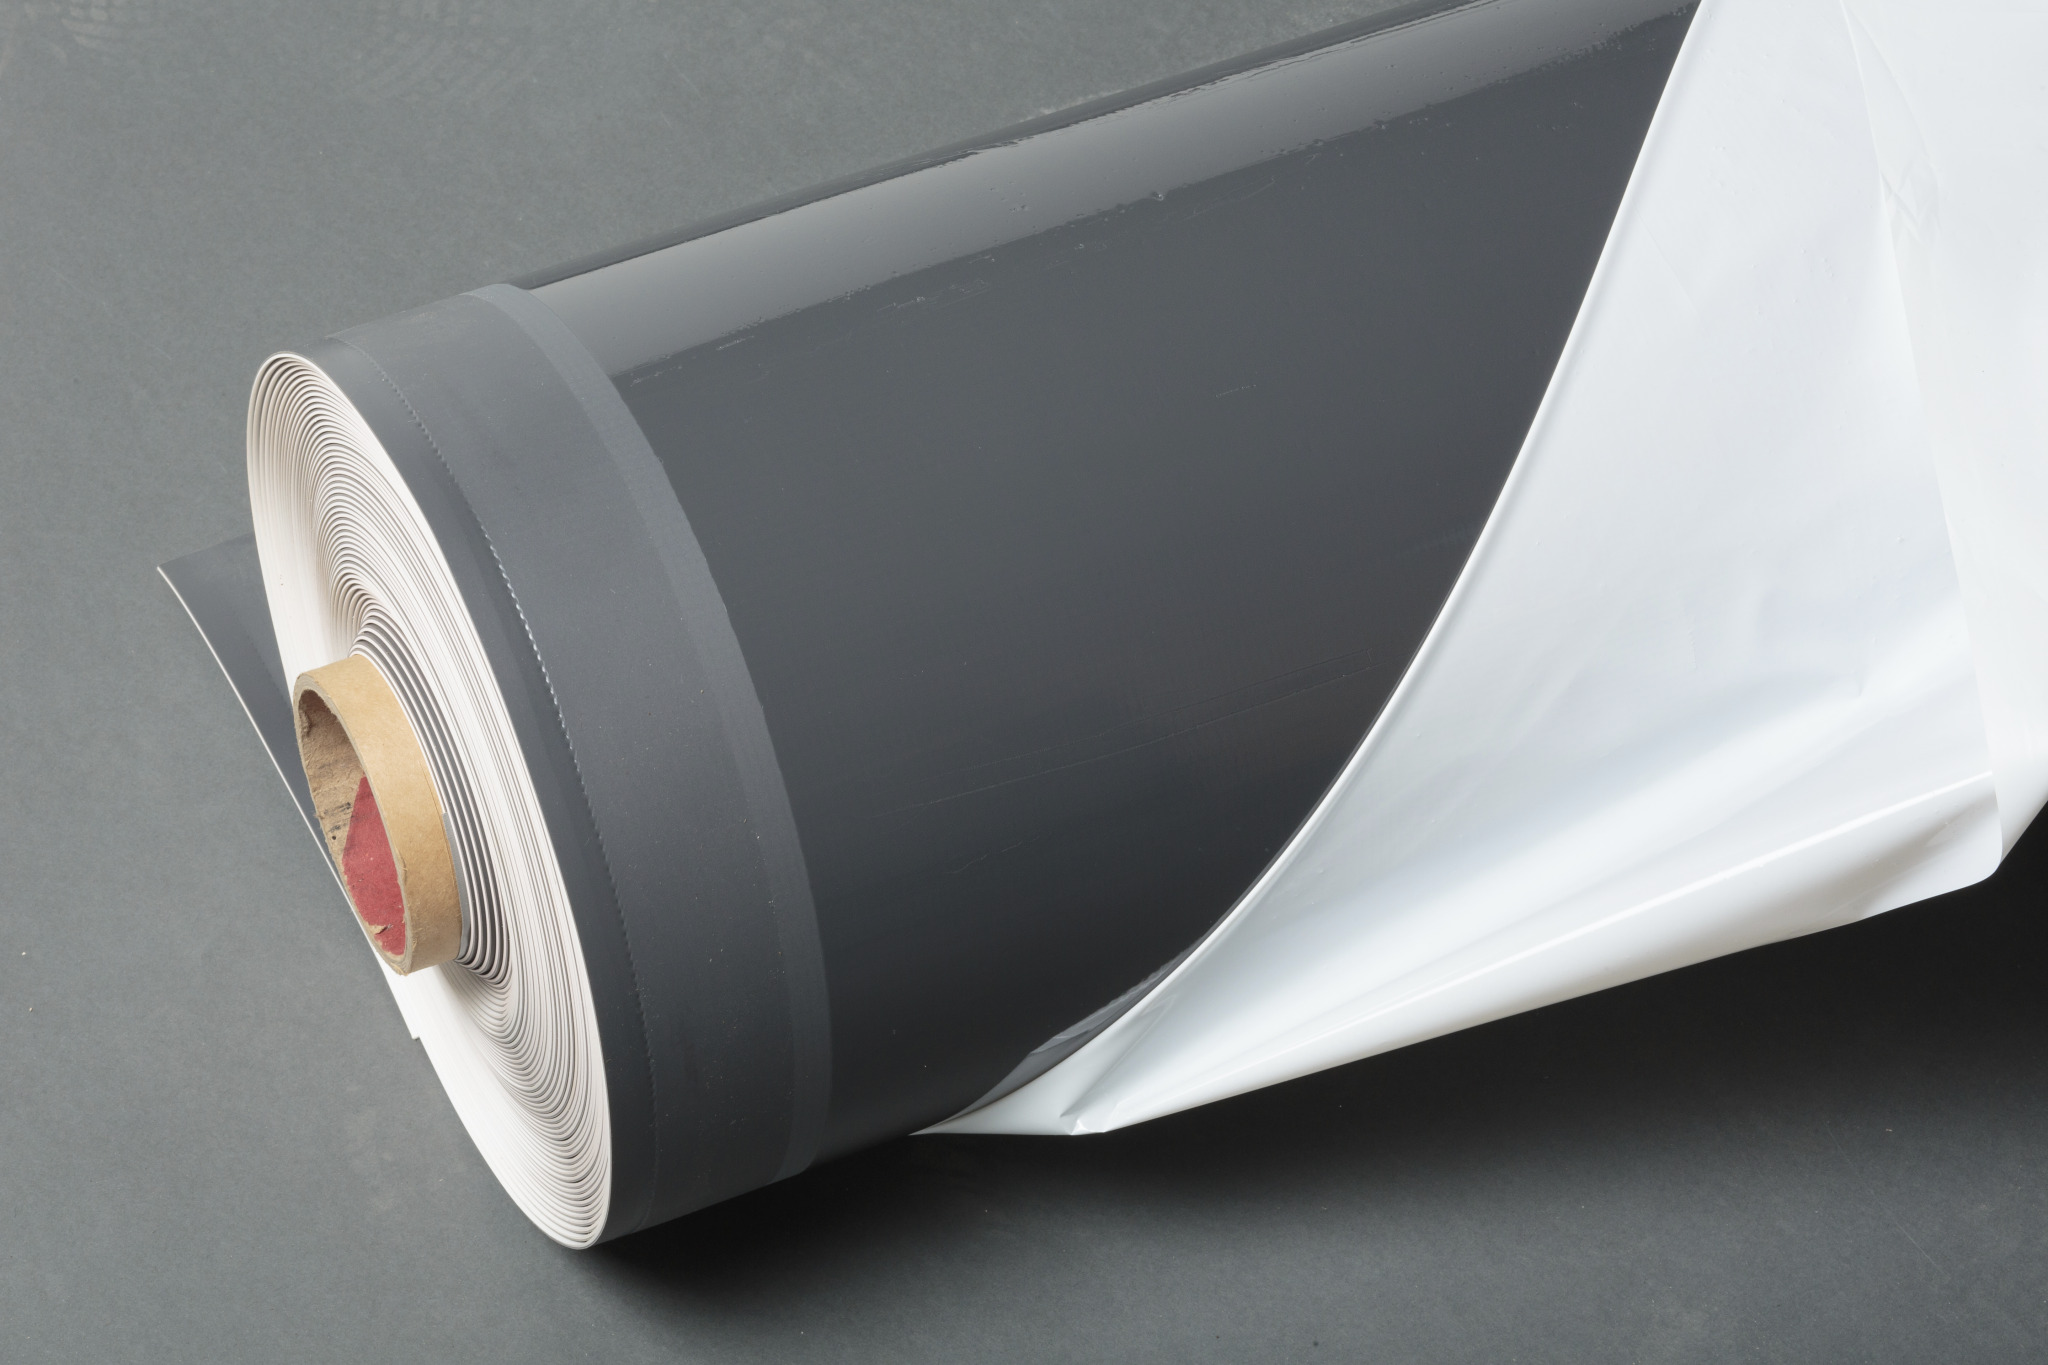 GenFlex Roofing Systems Has Introduced An Enhanced Self Adhesive Technology  For Its EZ TPO Peel